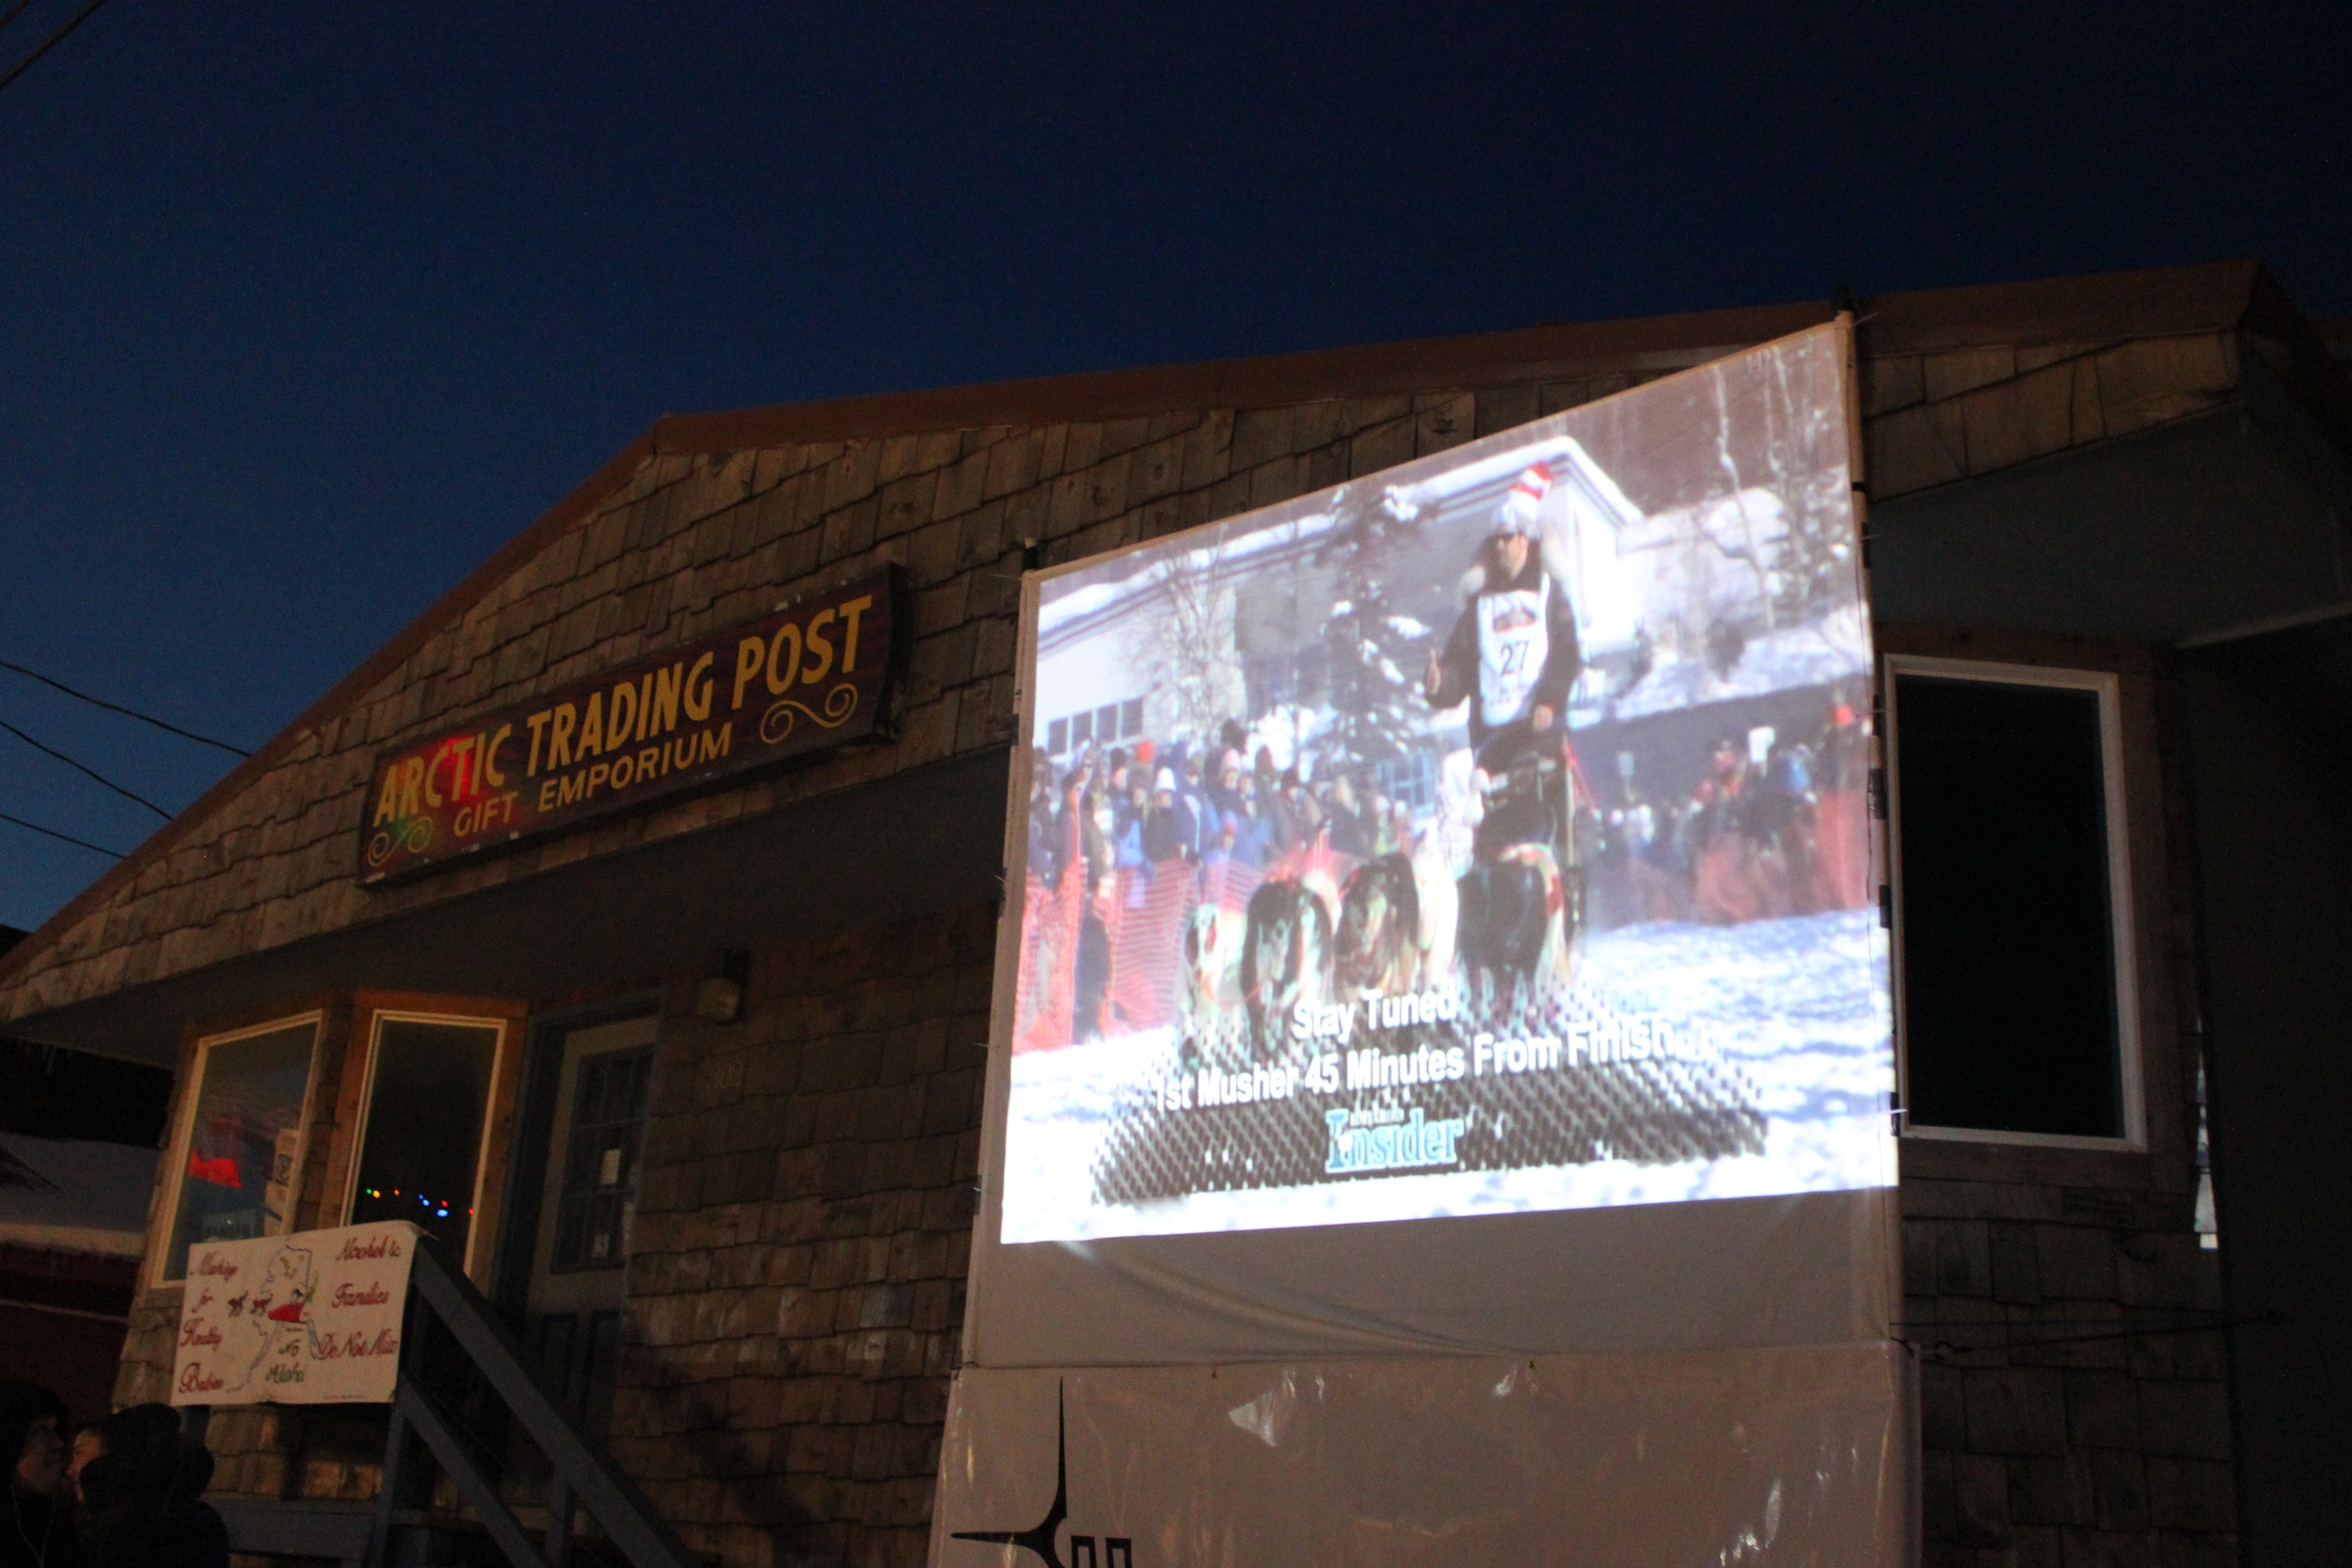 A large outdoor screen projected the arrival time of the first musher.